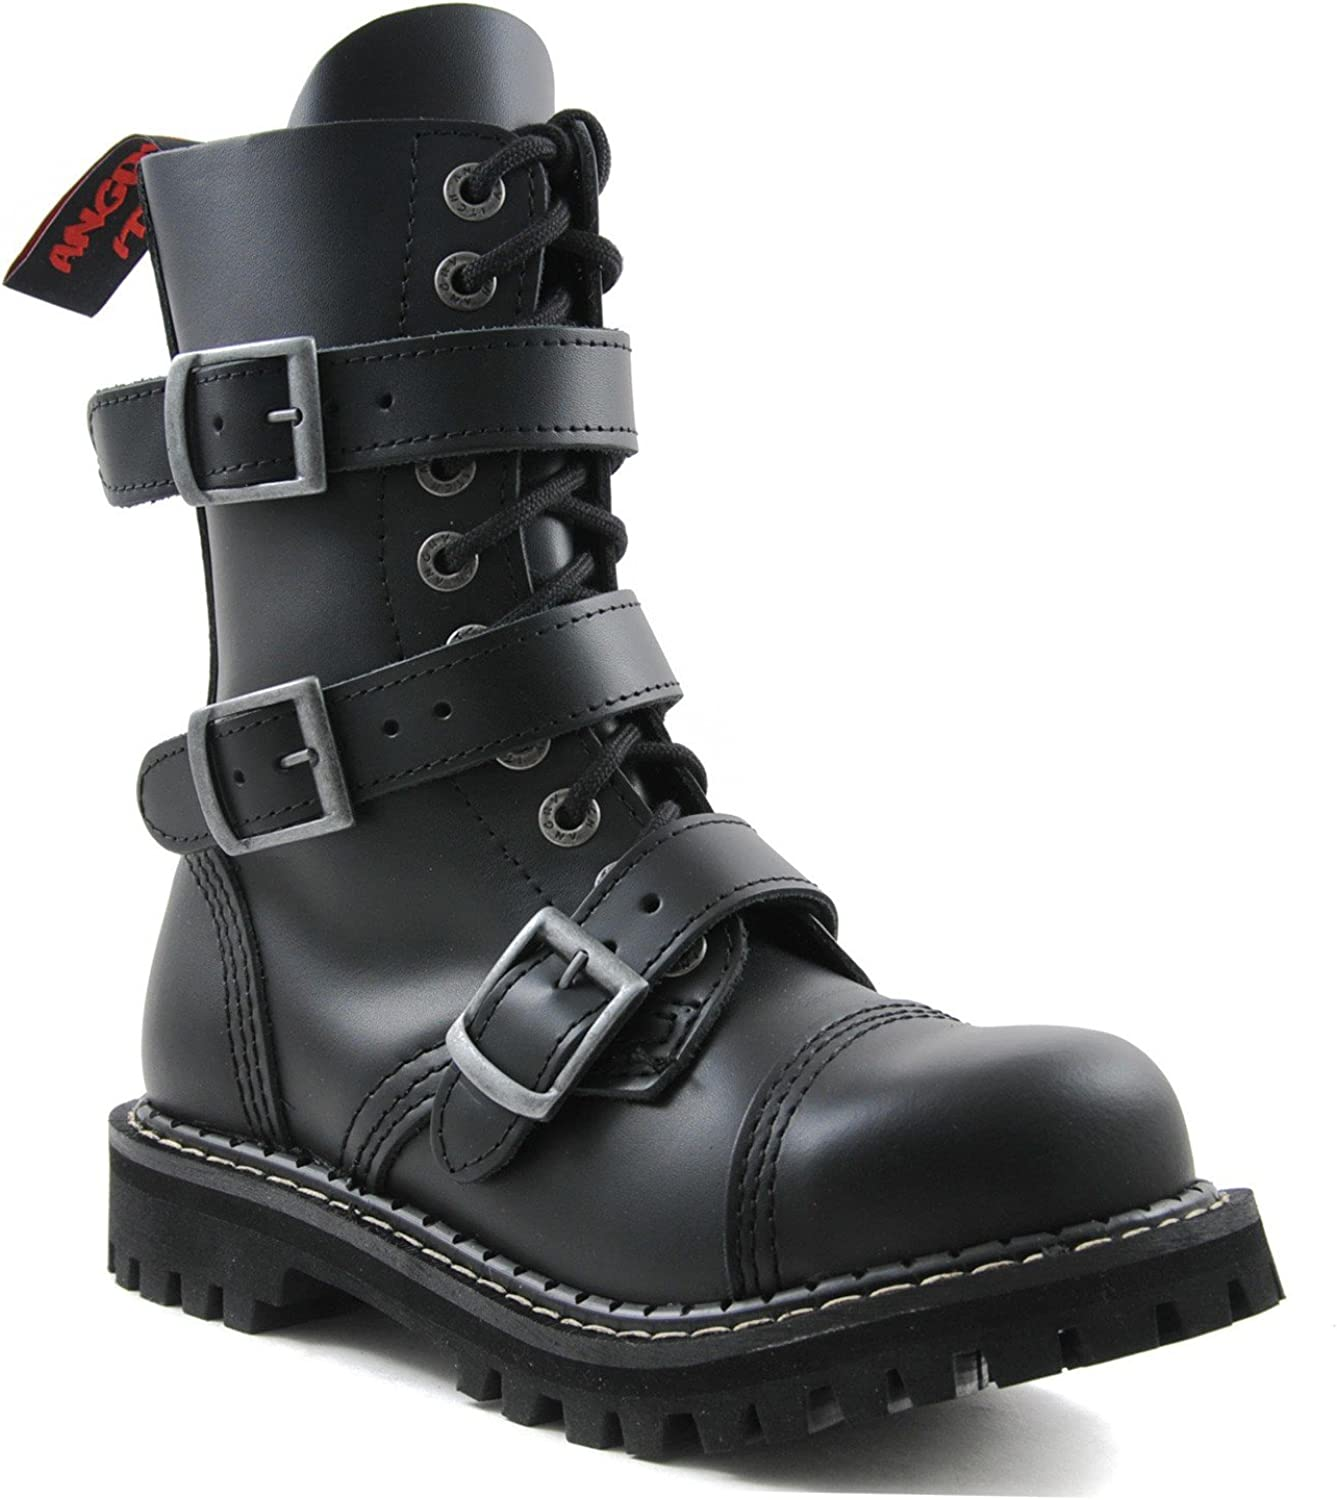 Angry Itch Combat Boots Black Leather Unisex Ladies Men's 3 Buckles Military Army Punk Steel Toe Ranger Punk